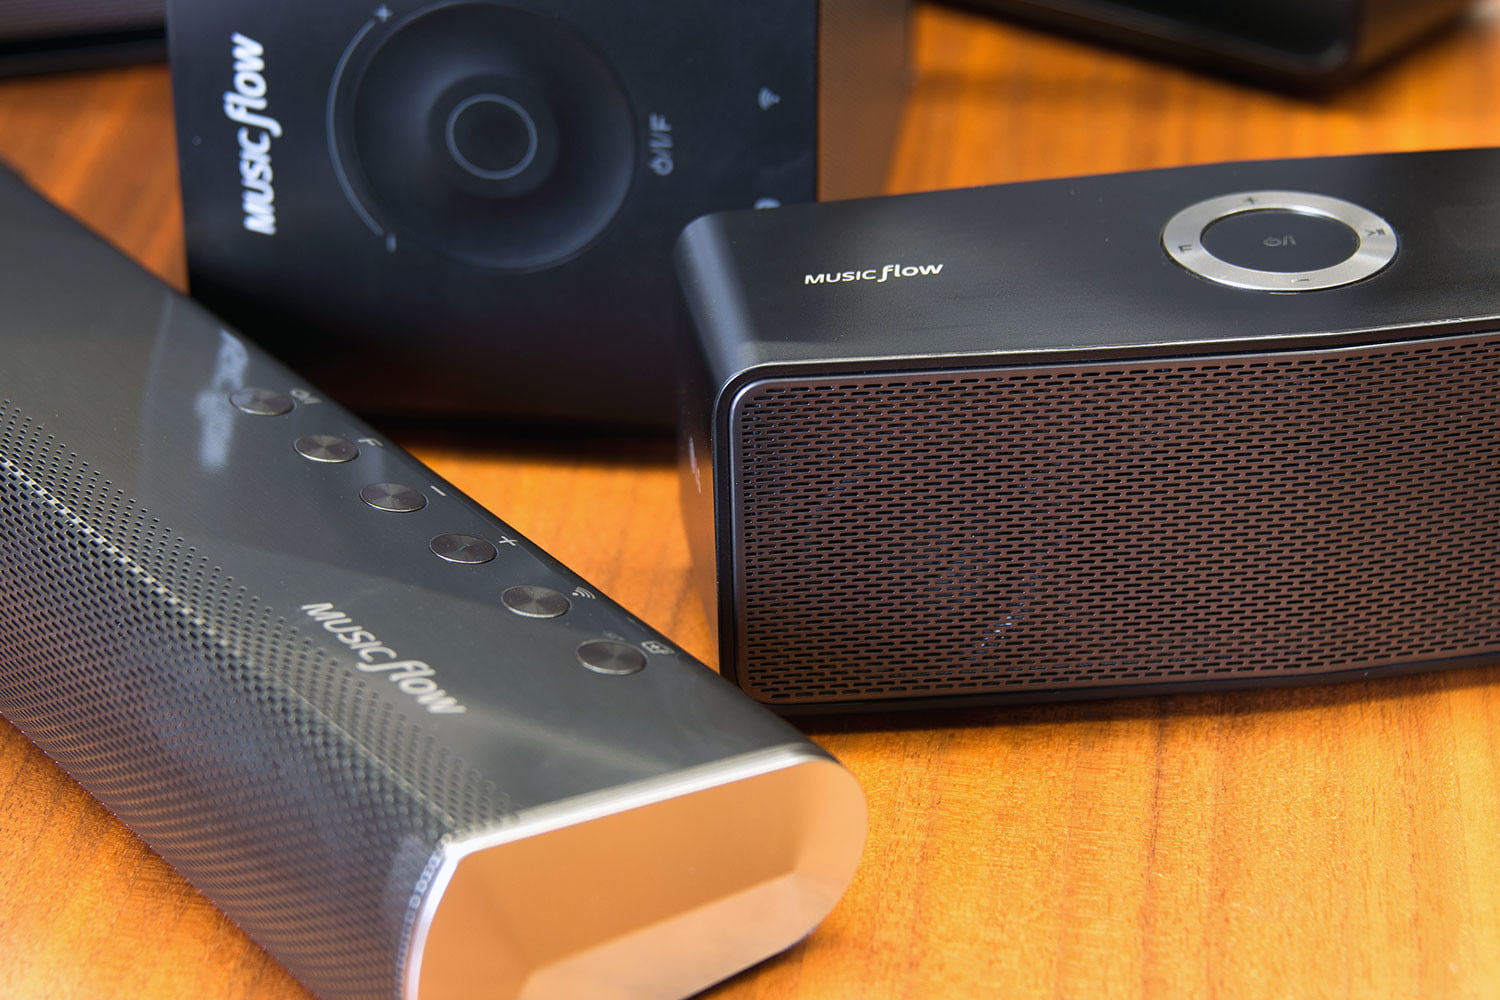 lg music flow hands on review musicflow logos